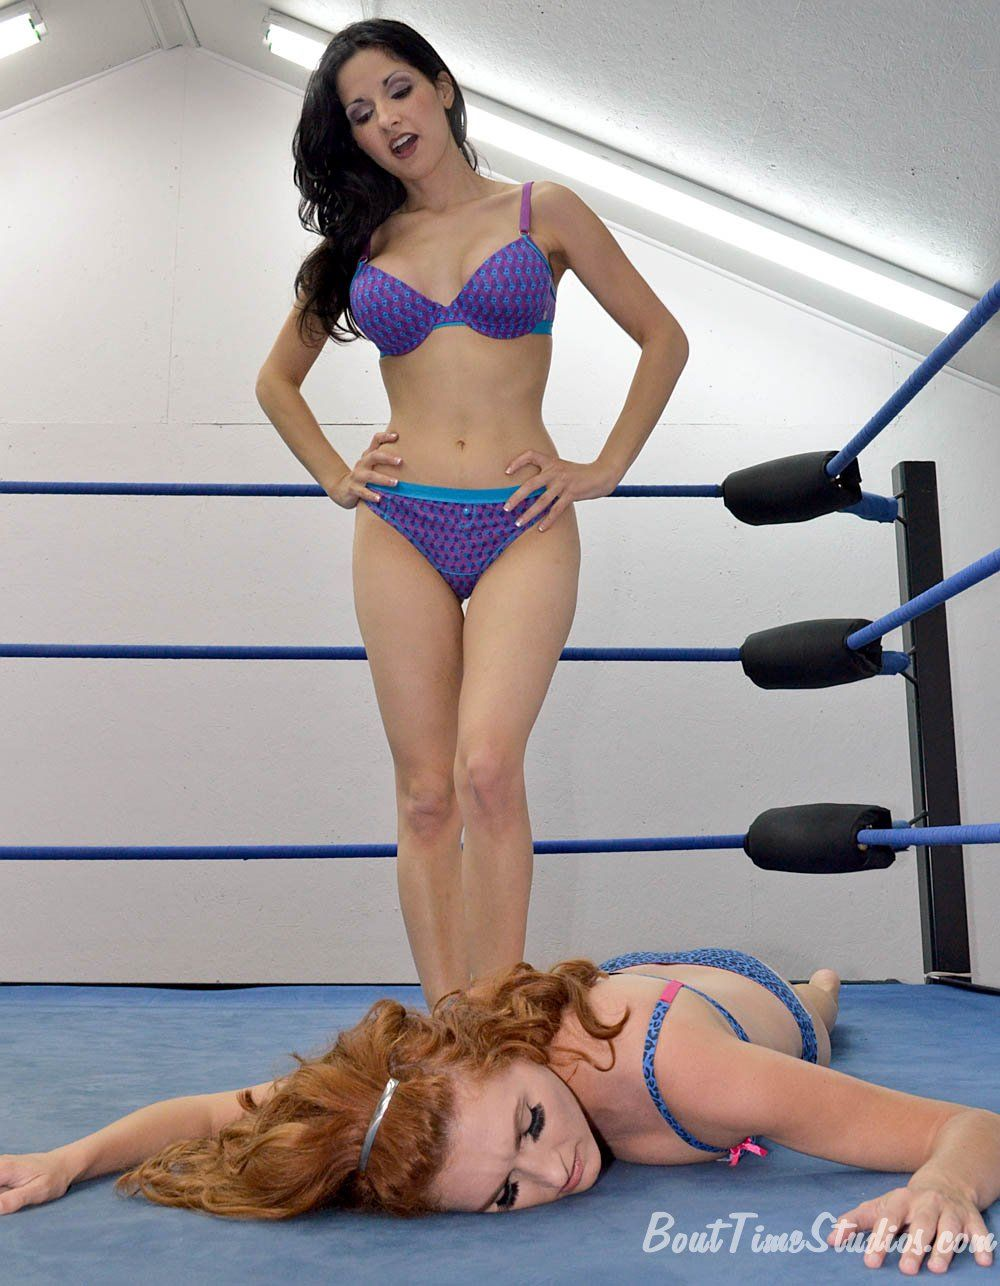 Catfight victory pose